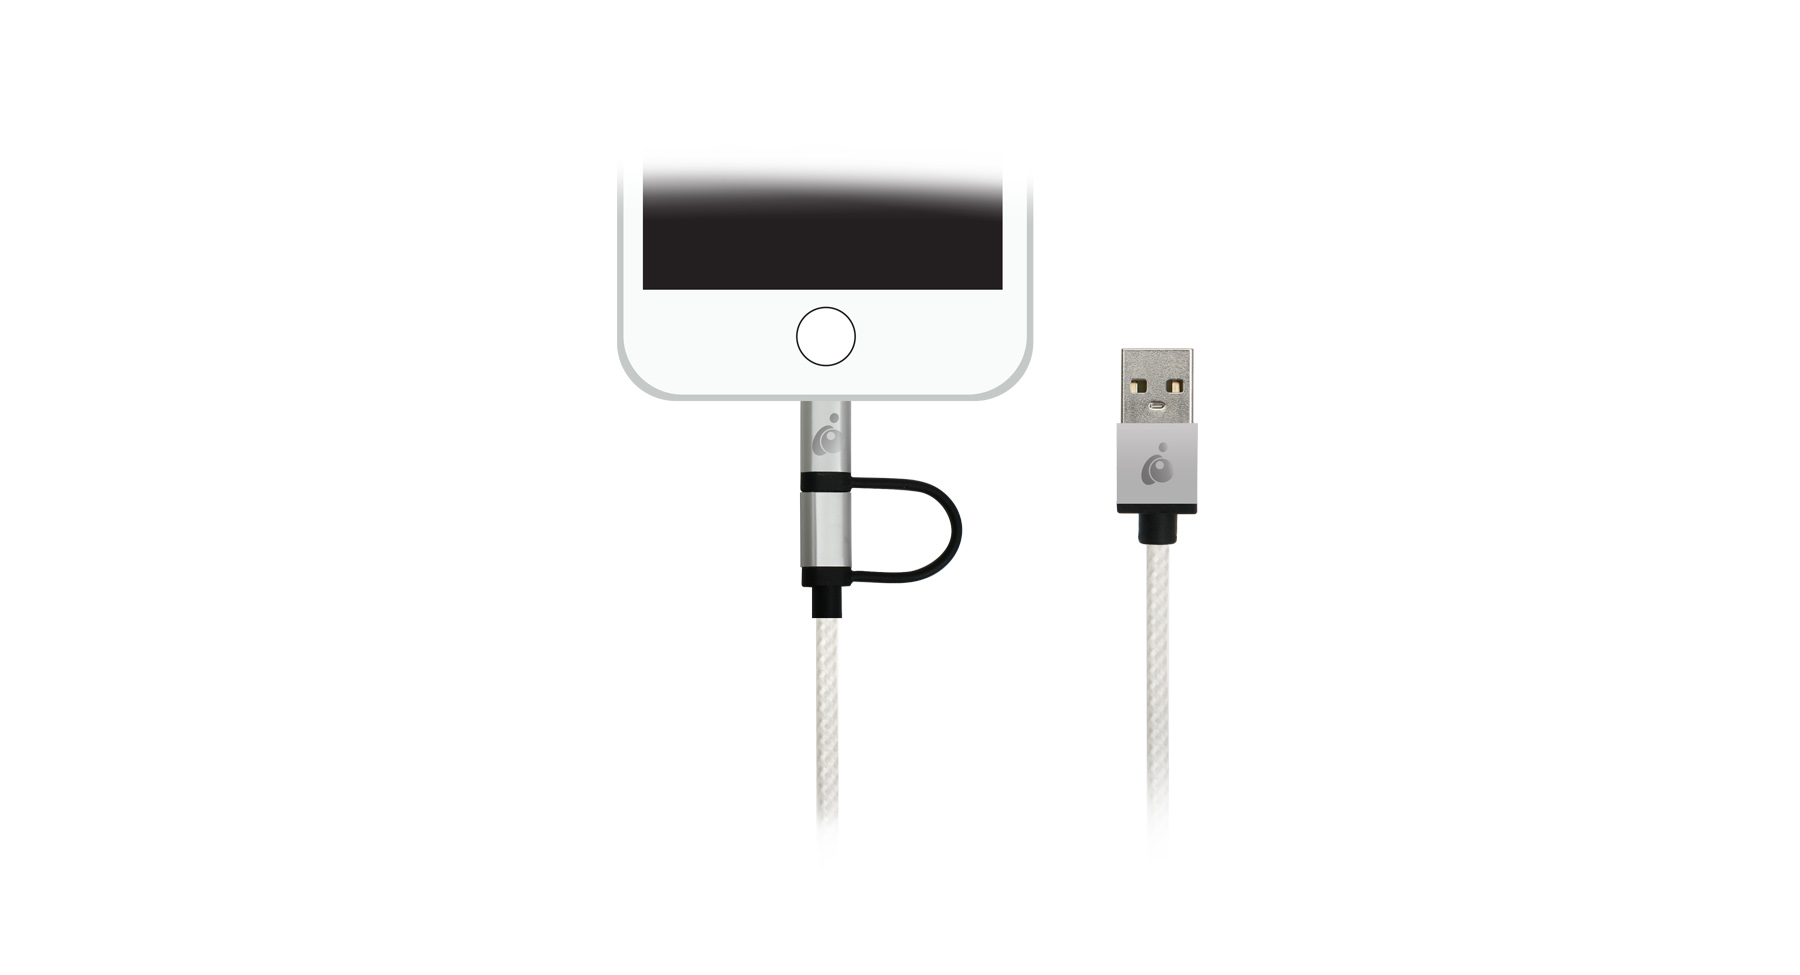 Iogear Guml01 Sil Duolinq 2 In 1 Charge Sync Cable Silver Wiring Black White Gold More Views